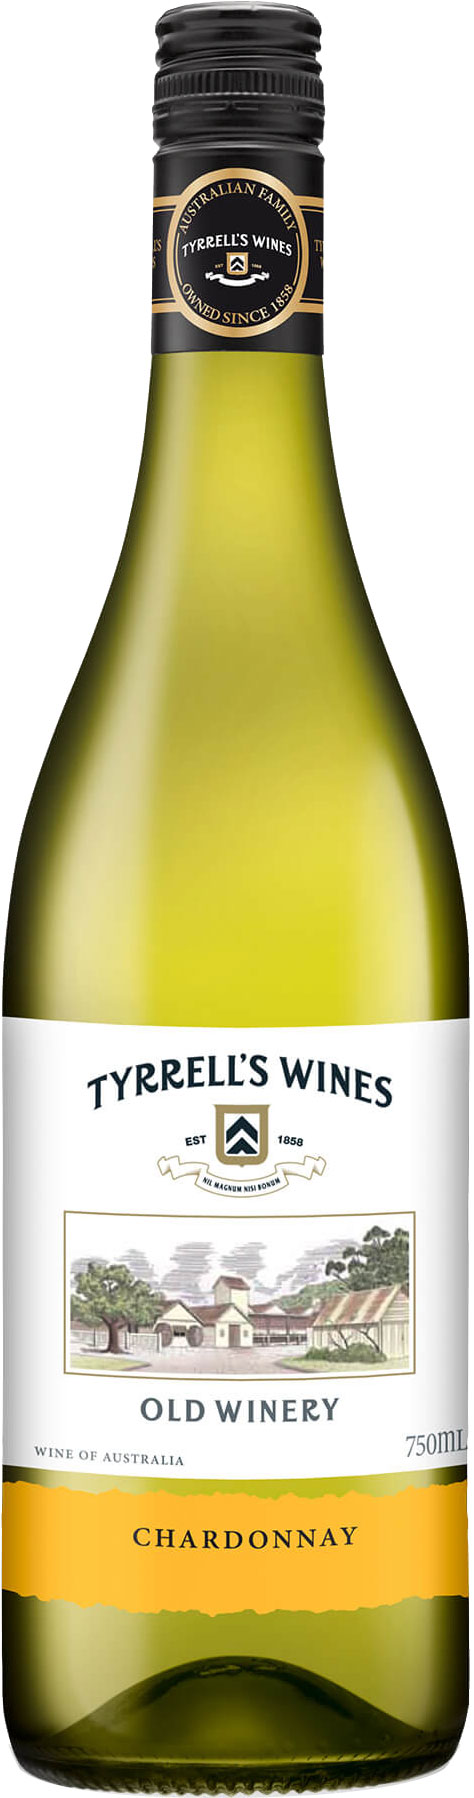 Tyrrells - Old Winery Chardonnay 2017 6x 75cl Bottles